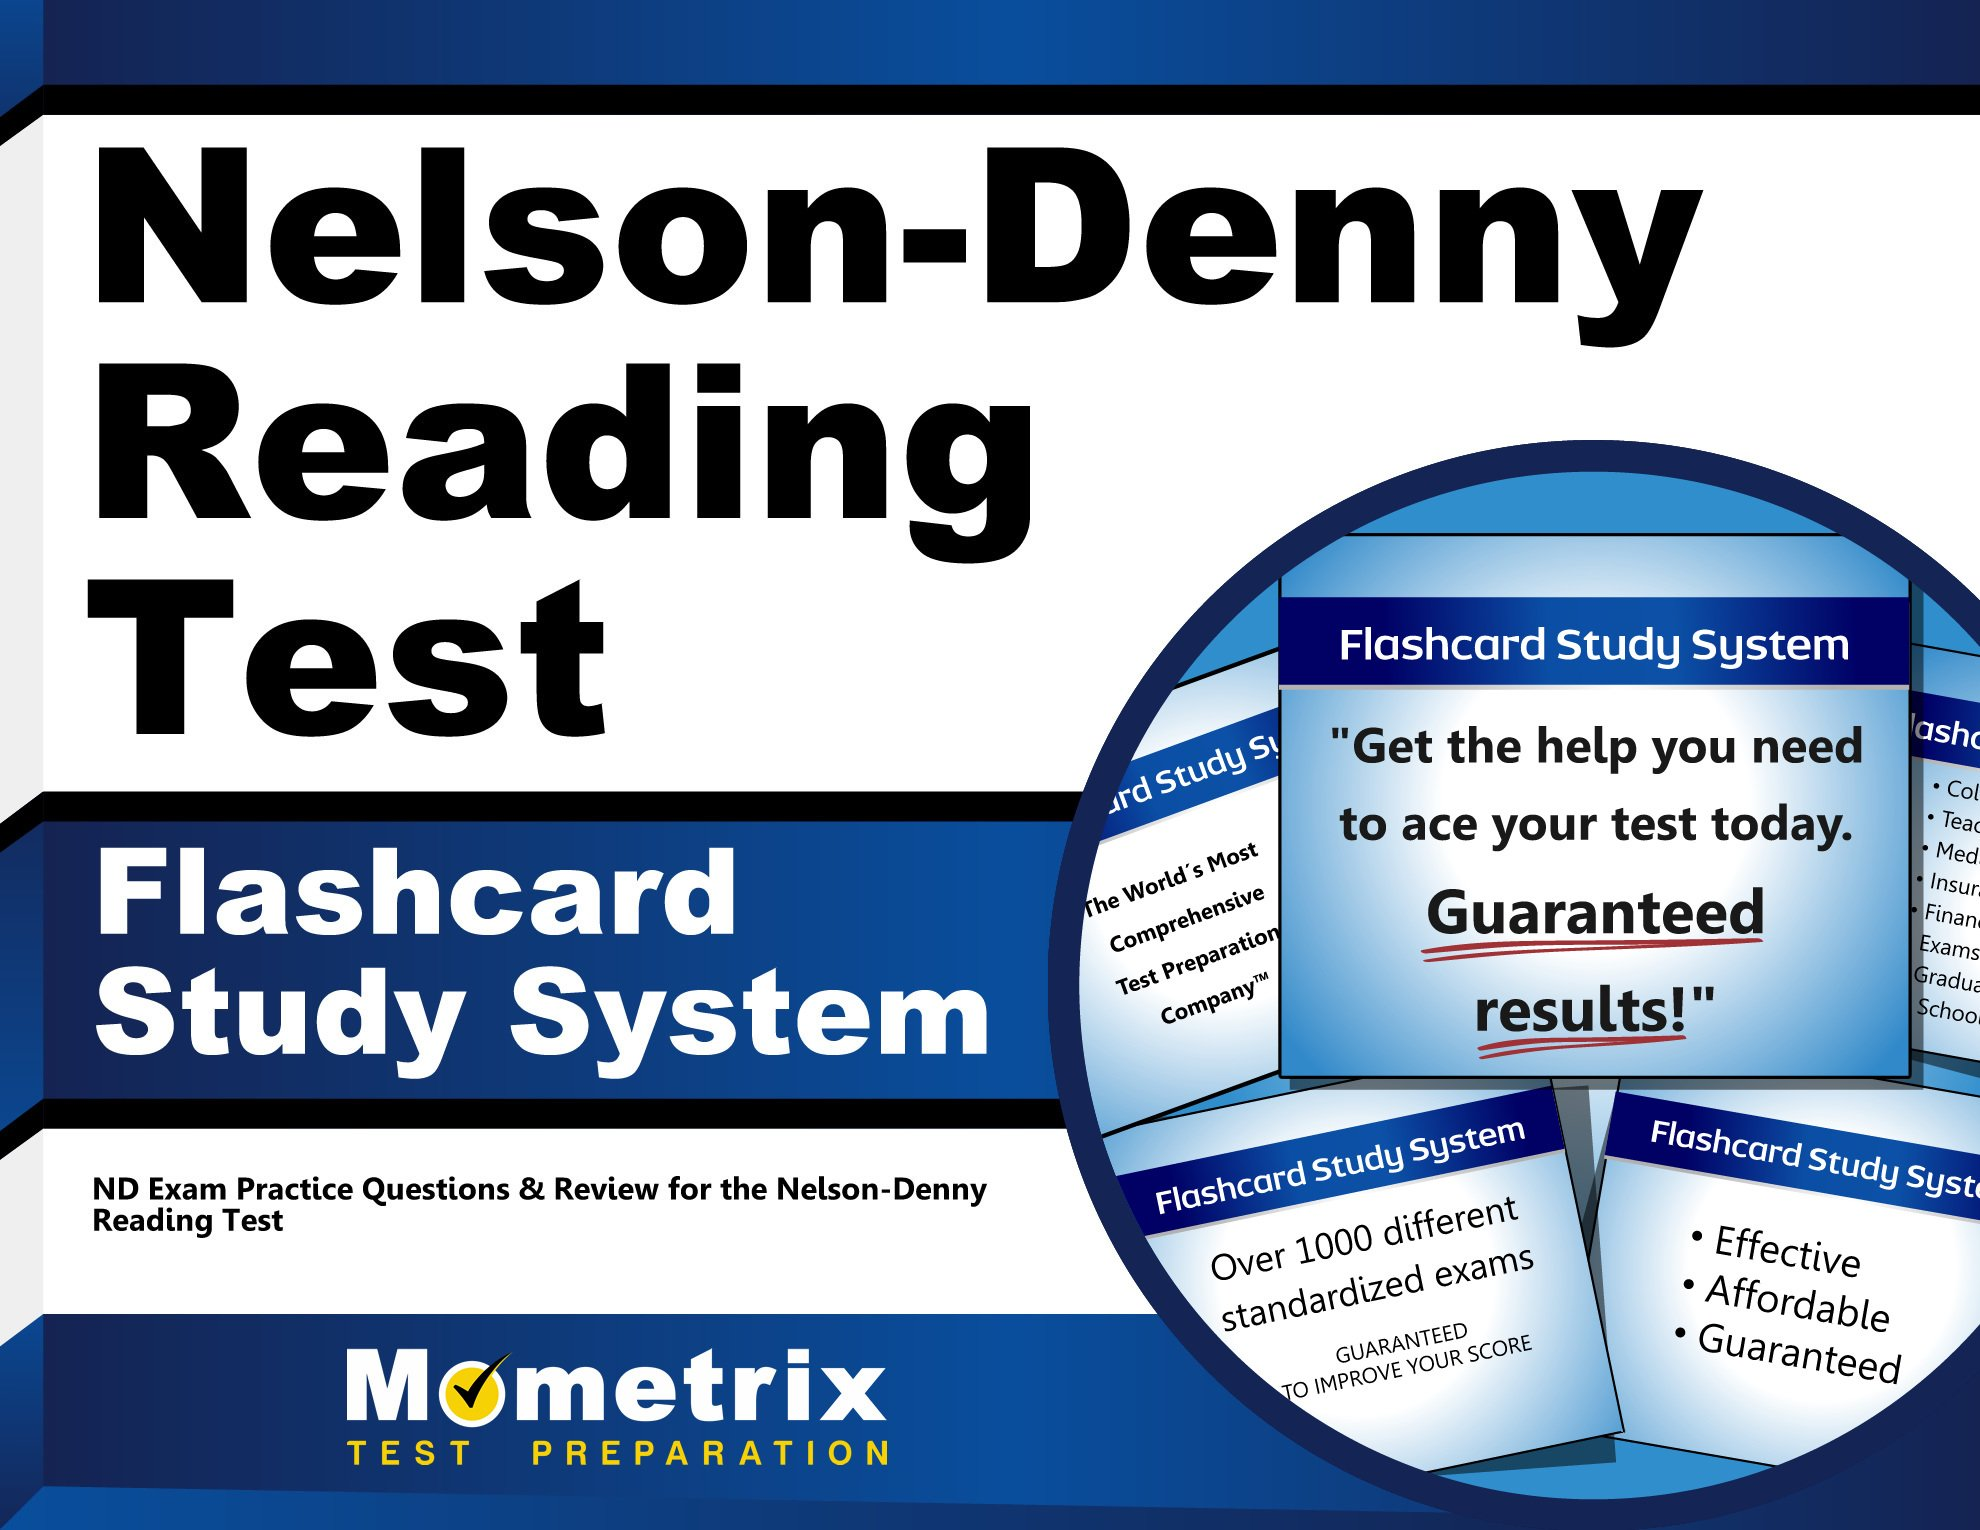 Nelson Denny Reading Test Flashcard Study System Nd Exam Practice